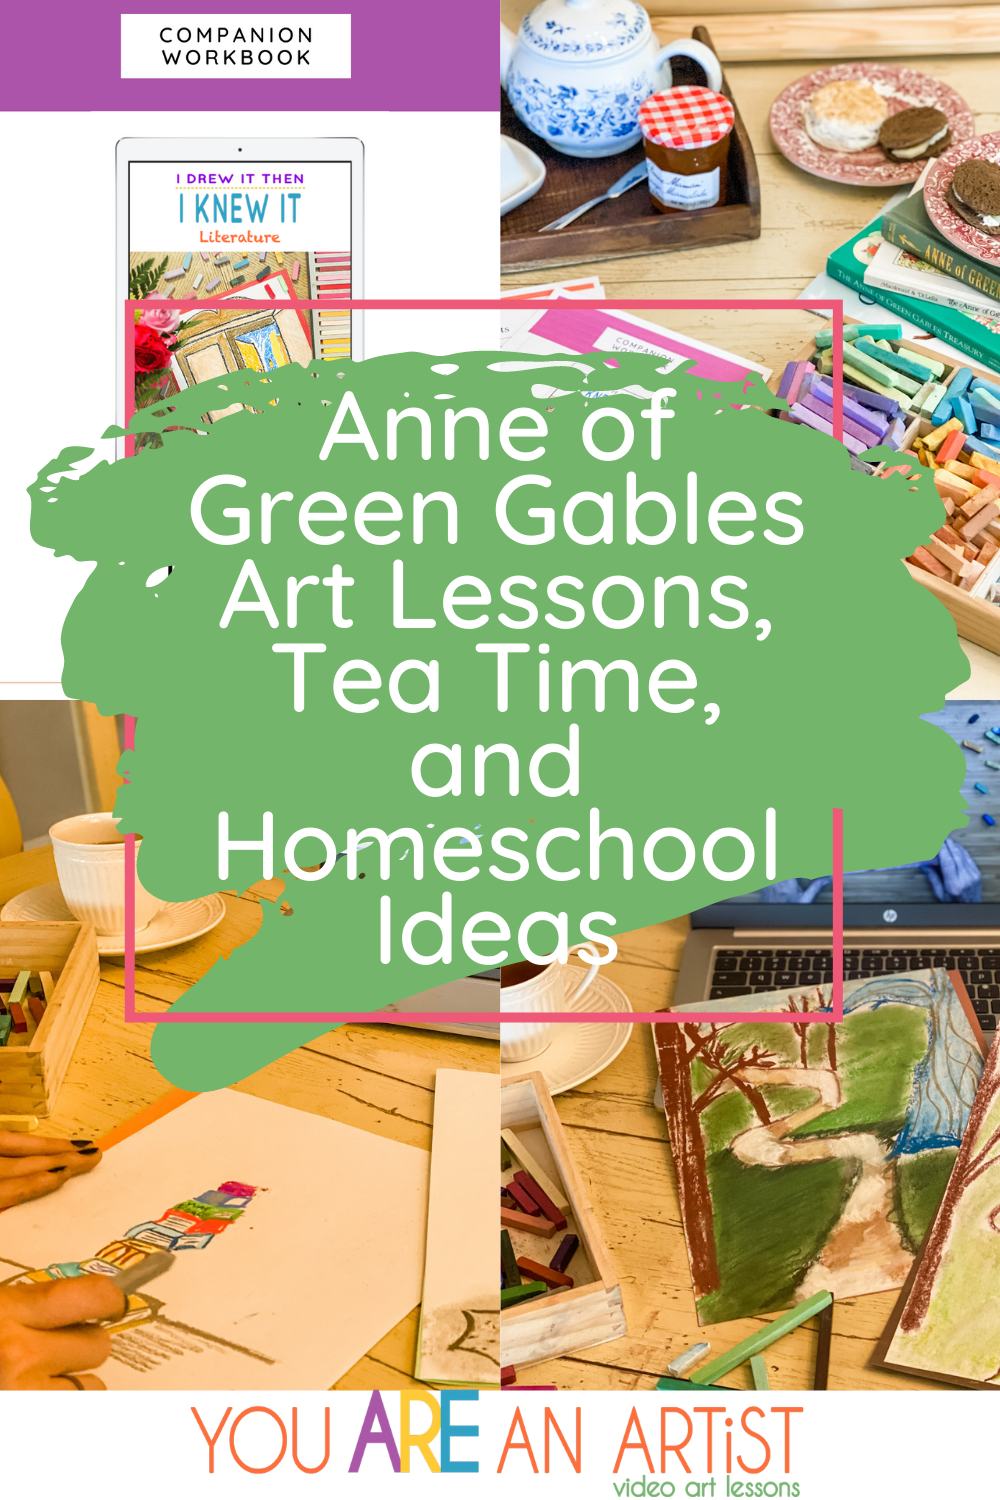 Calling all fellow Anne fans to celebrate Anne of Green Gables art lessons with tea time! Join us for homeschool art ideas and resources. #anneofgreengables #homeschoolart #onlineartlessons #artcurriculum #teatime